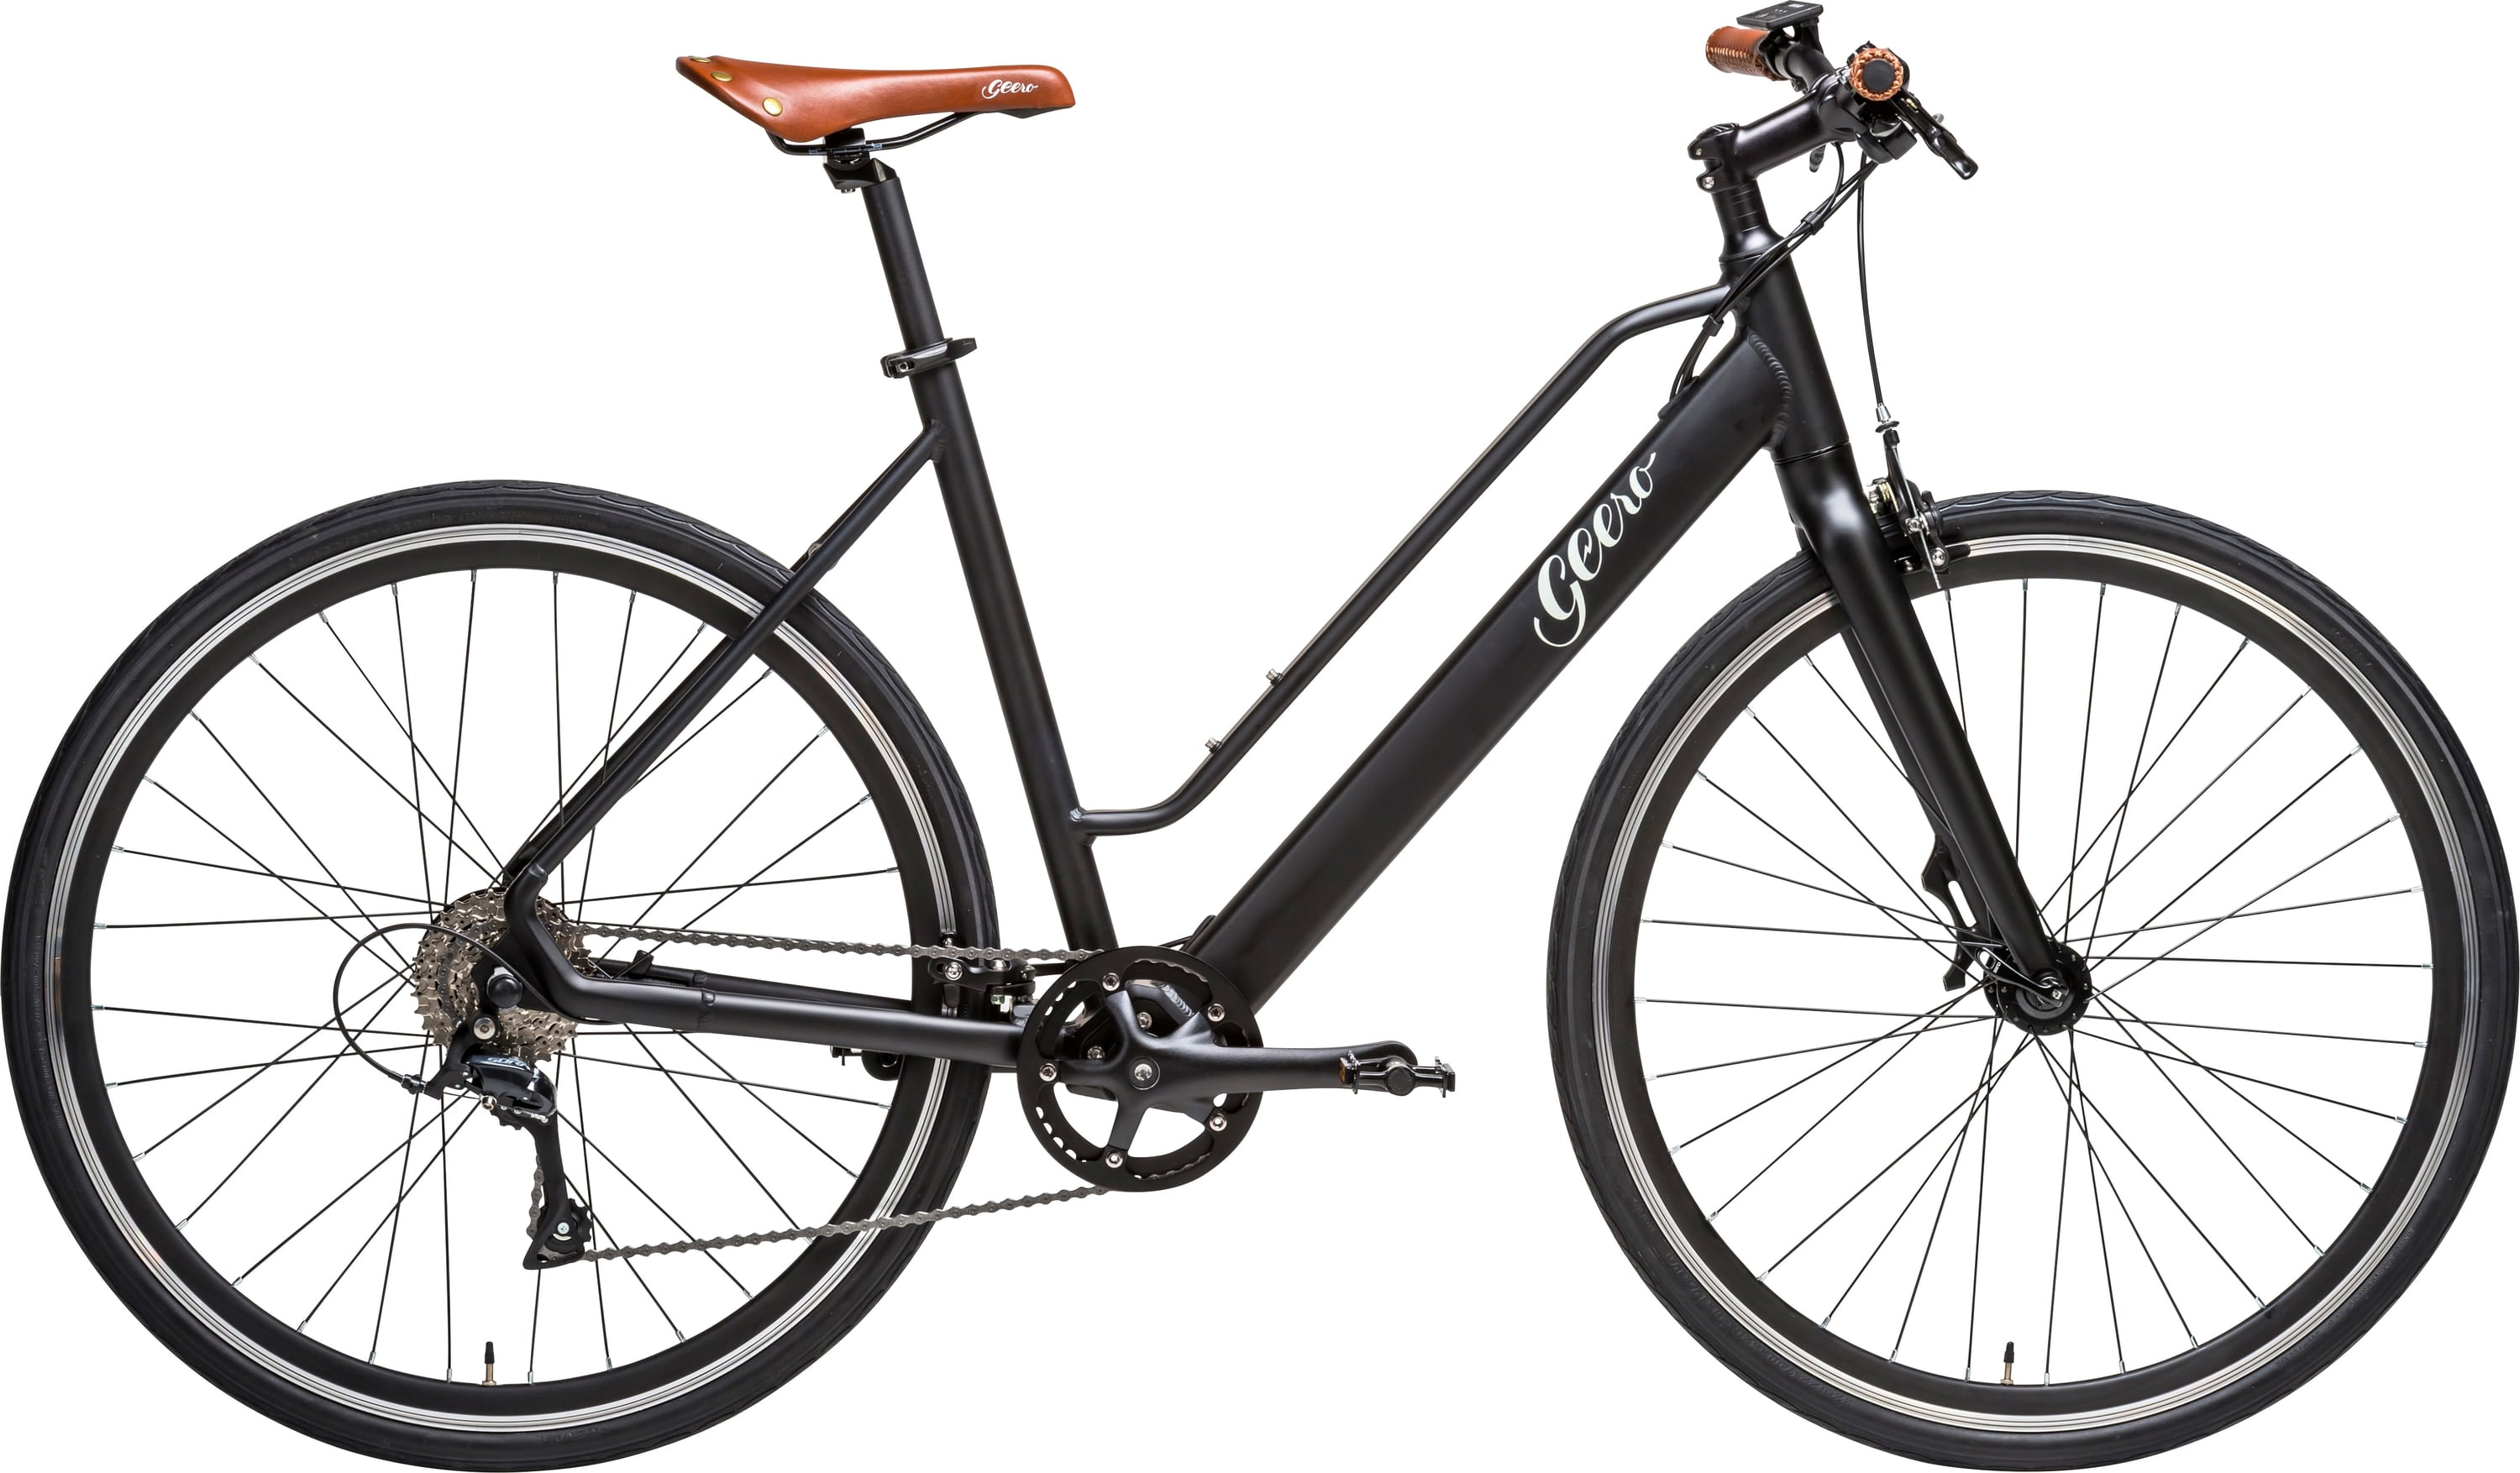 "Geero E-Bike ""Vintage Vinyl Black"" - Geero E-Bike Online Shop Europe"